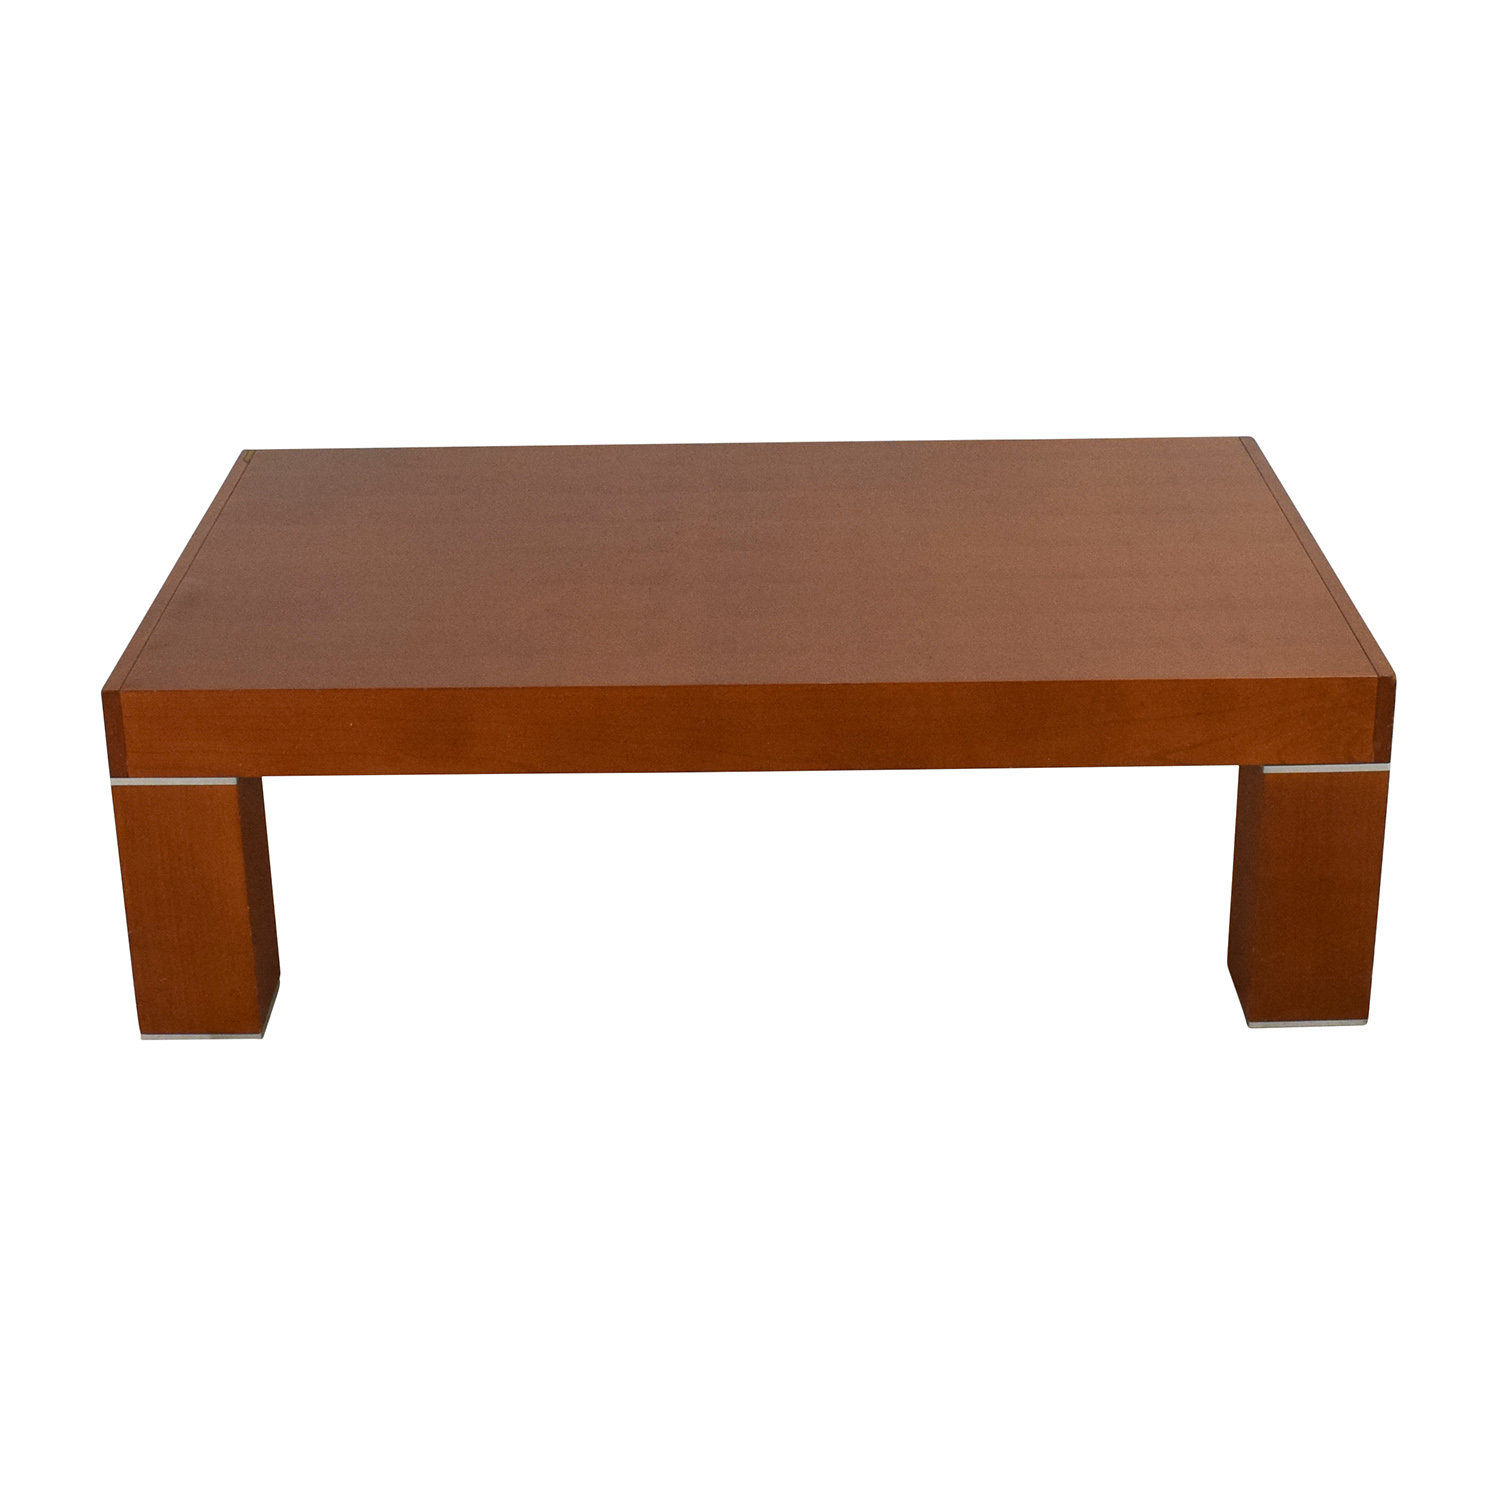 OFF Roche Bobois Paris Roche Bobois Paris Wood Coffee Table